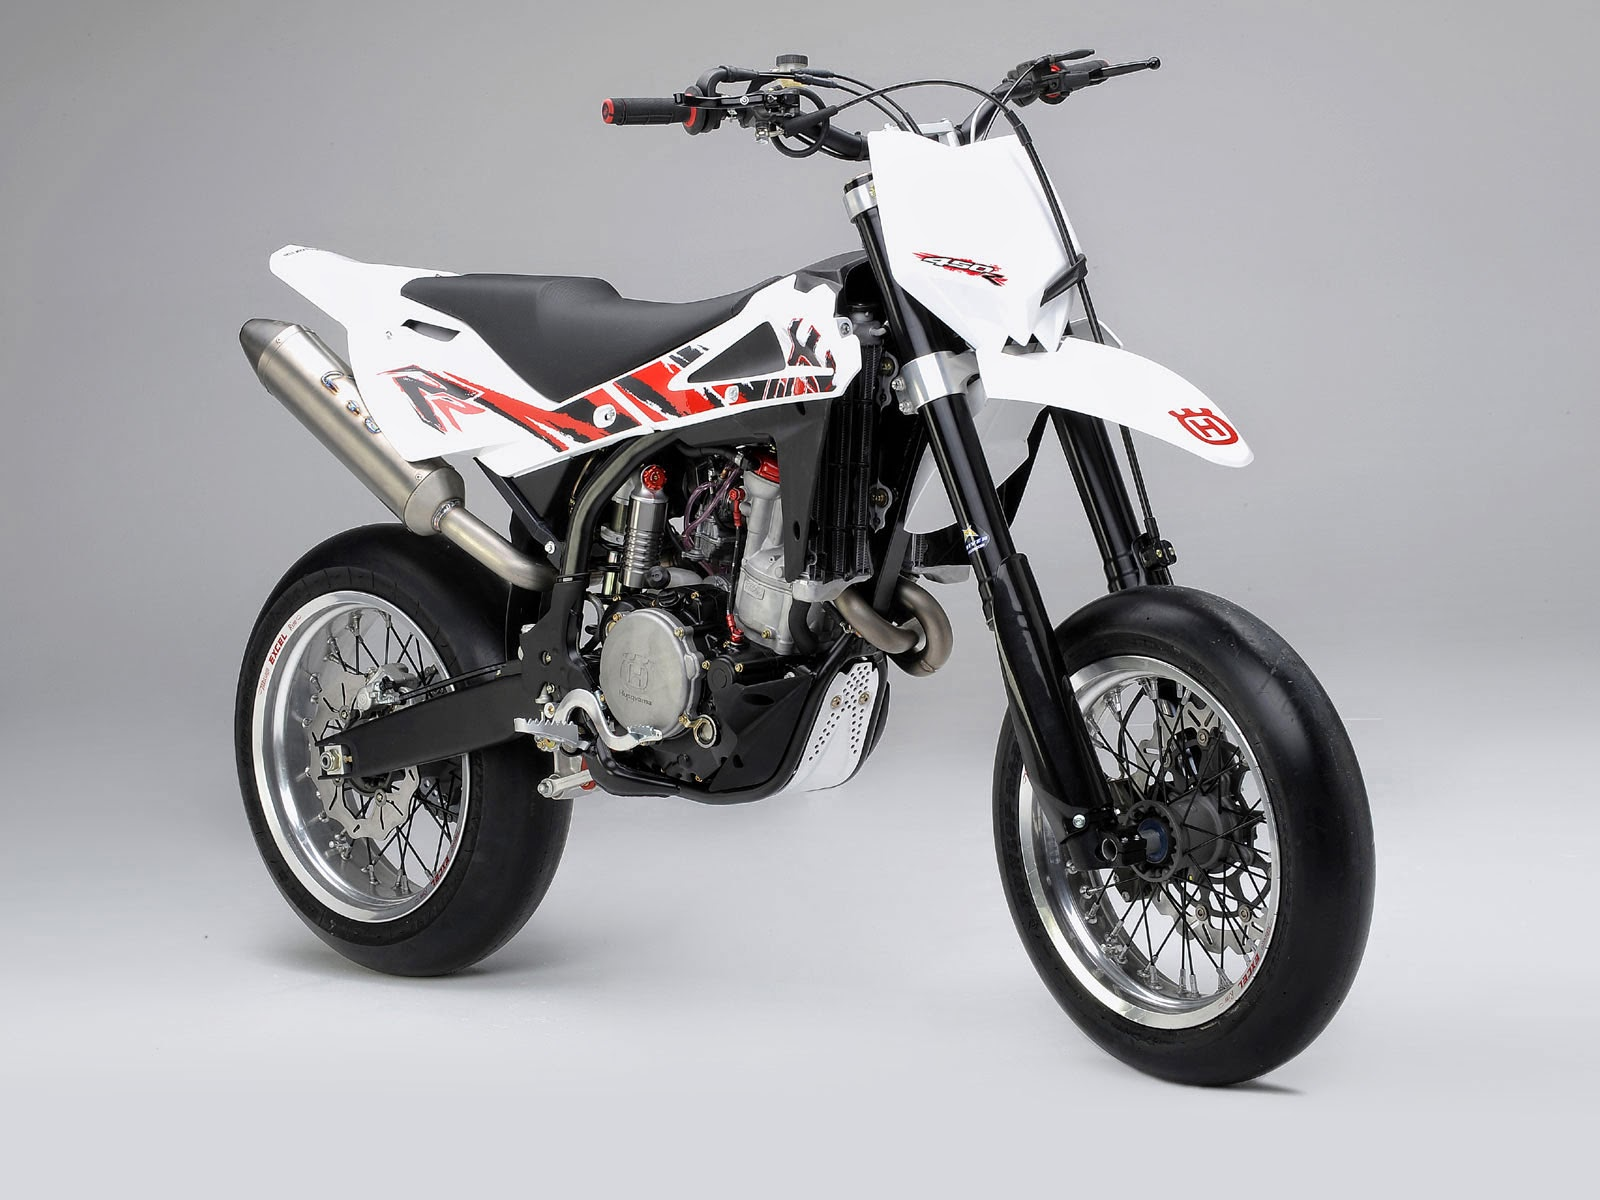 Husqvarna SMR450 Upcoming Bikes